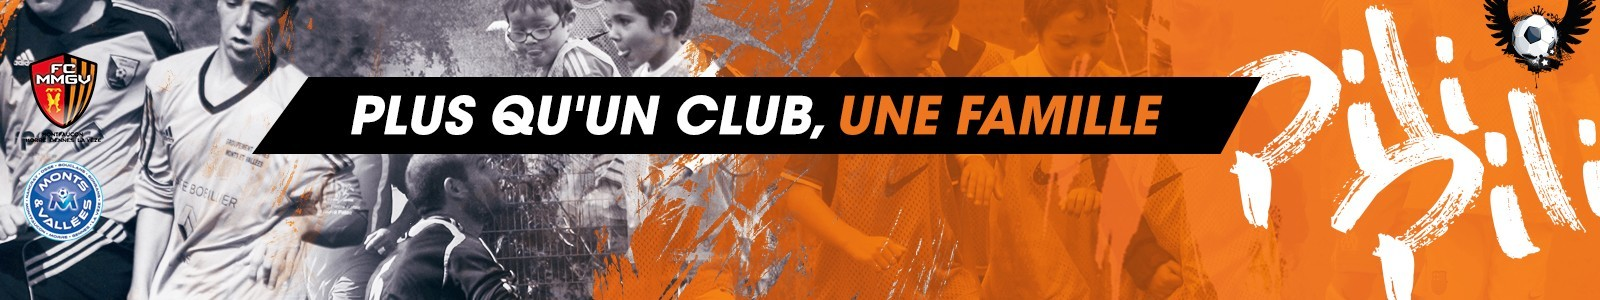 Site Internet officiel du club de football Football Club Montfaucon Morre Gennes La Vèze